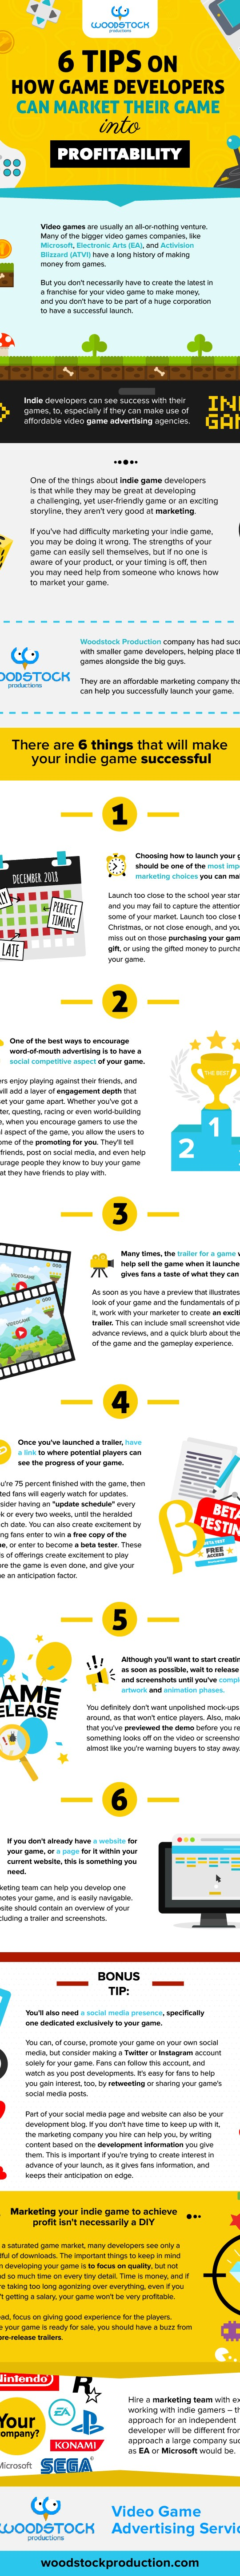 6 tips on how game developers can market their game into profitable